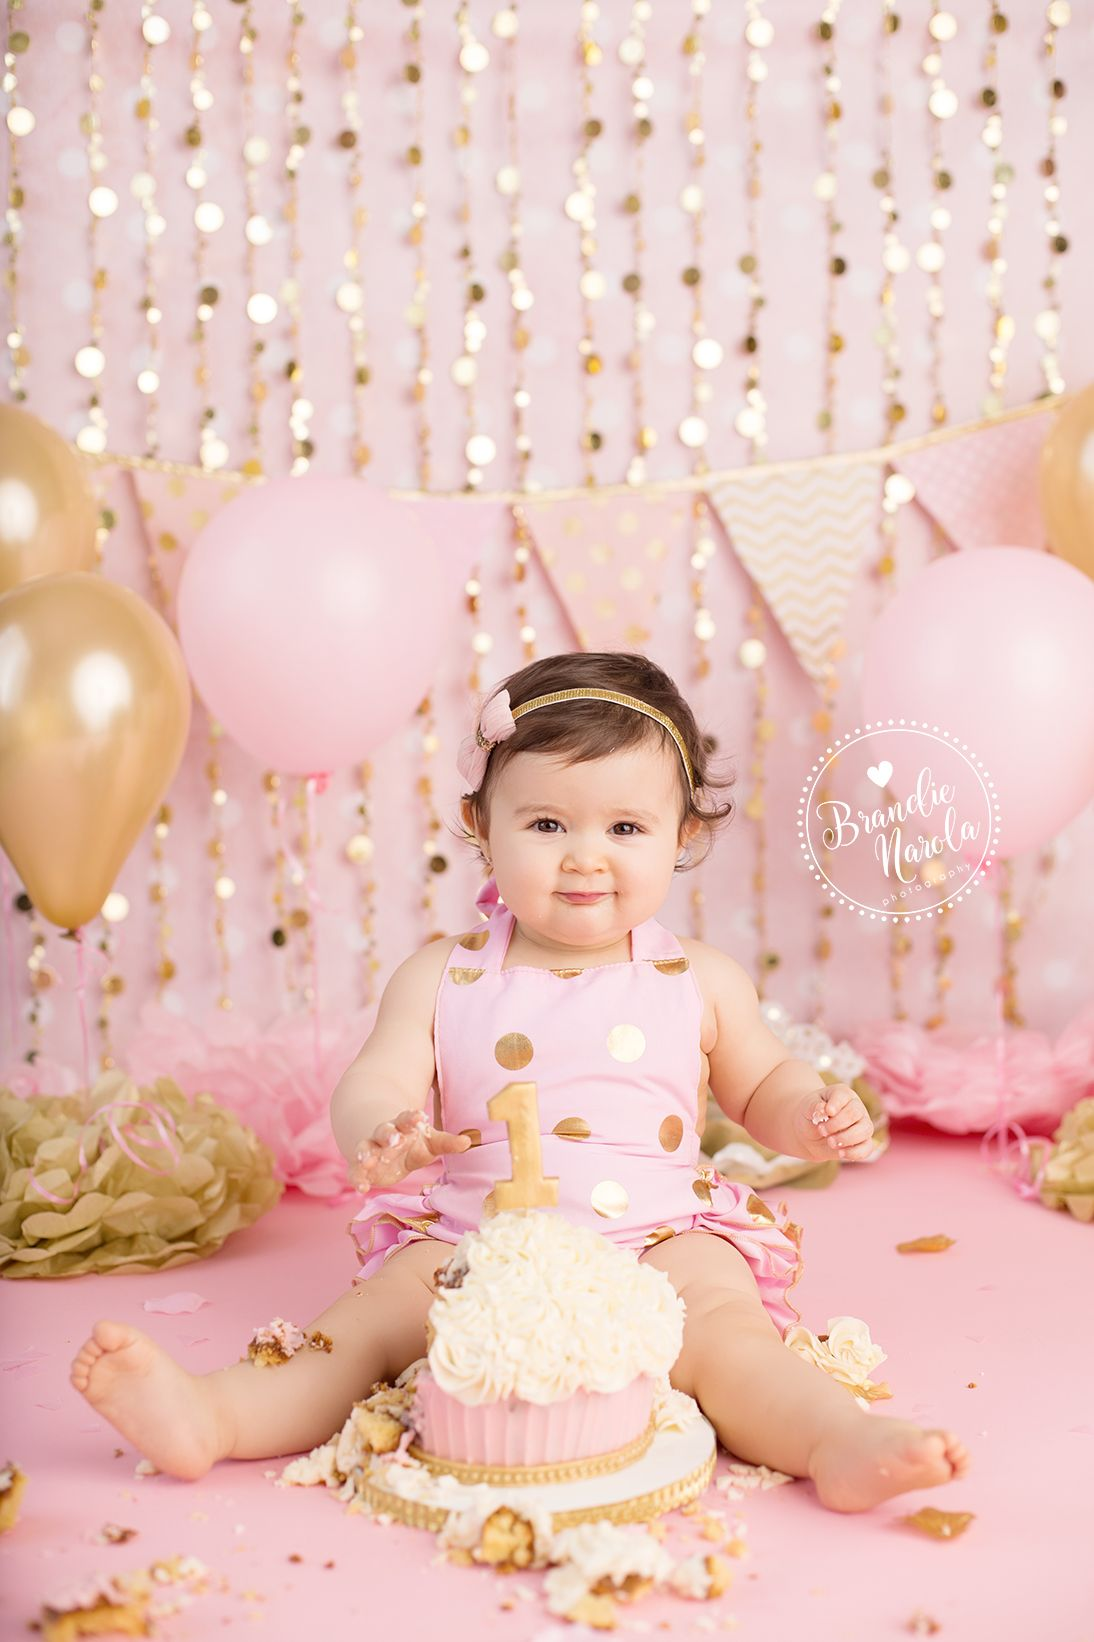 Incredible Themed Baby Cake Smash Photos By Brandie Narola Photography Funny Birthday Cards Online Elaedamsfinfo